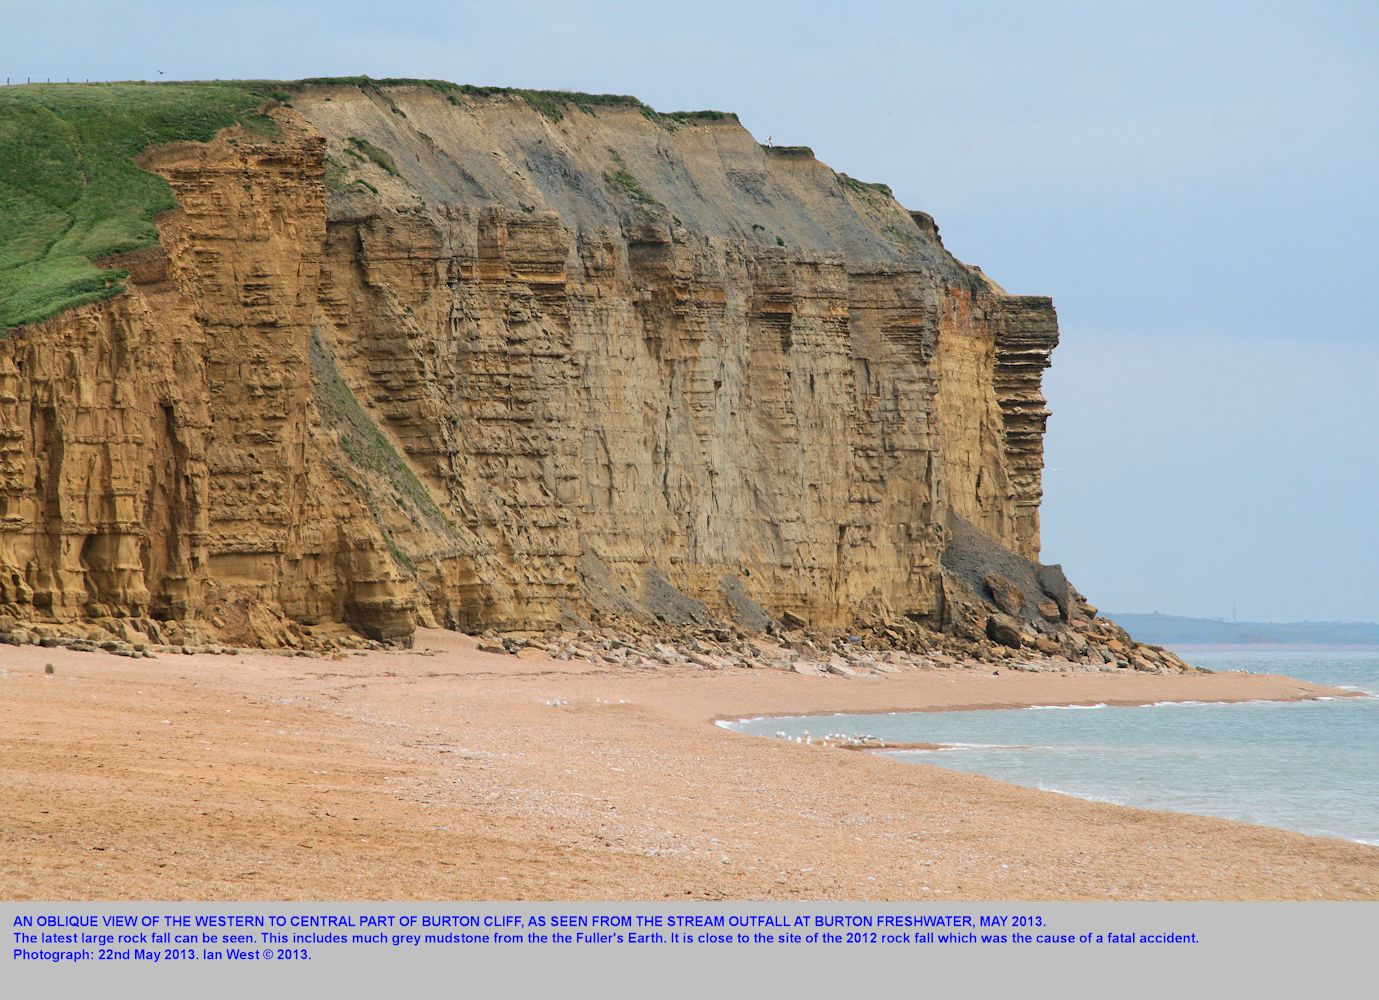 A major rock fall of 2013, near the fatal 2012 rock fall, Burton Cliff Burton Bradstock, Dorset, as seen obliquely from Burton Freshwater, 22nd May 2013